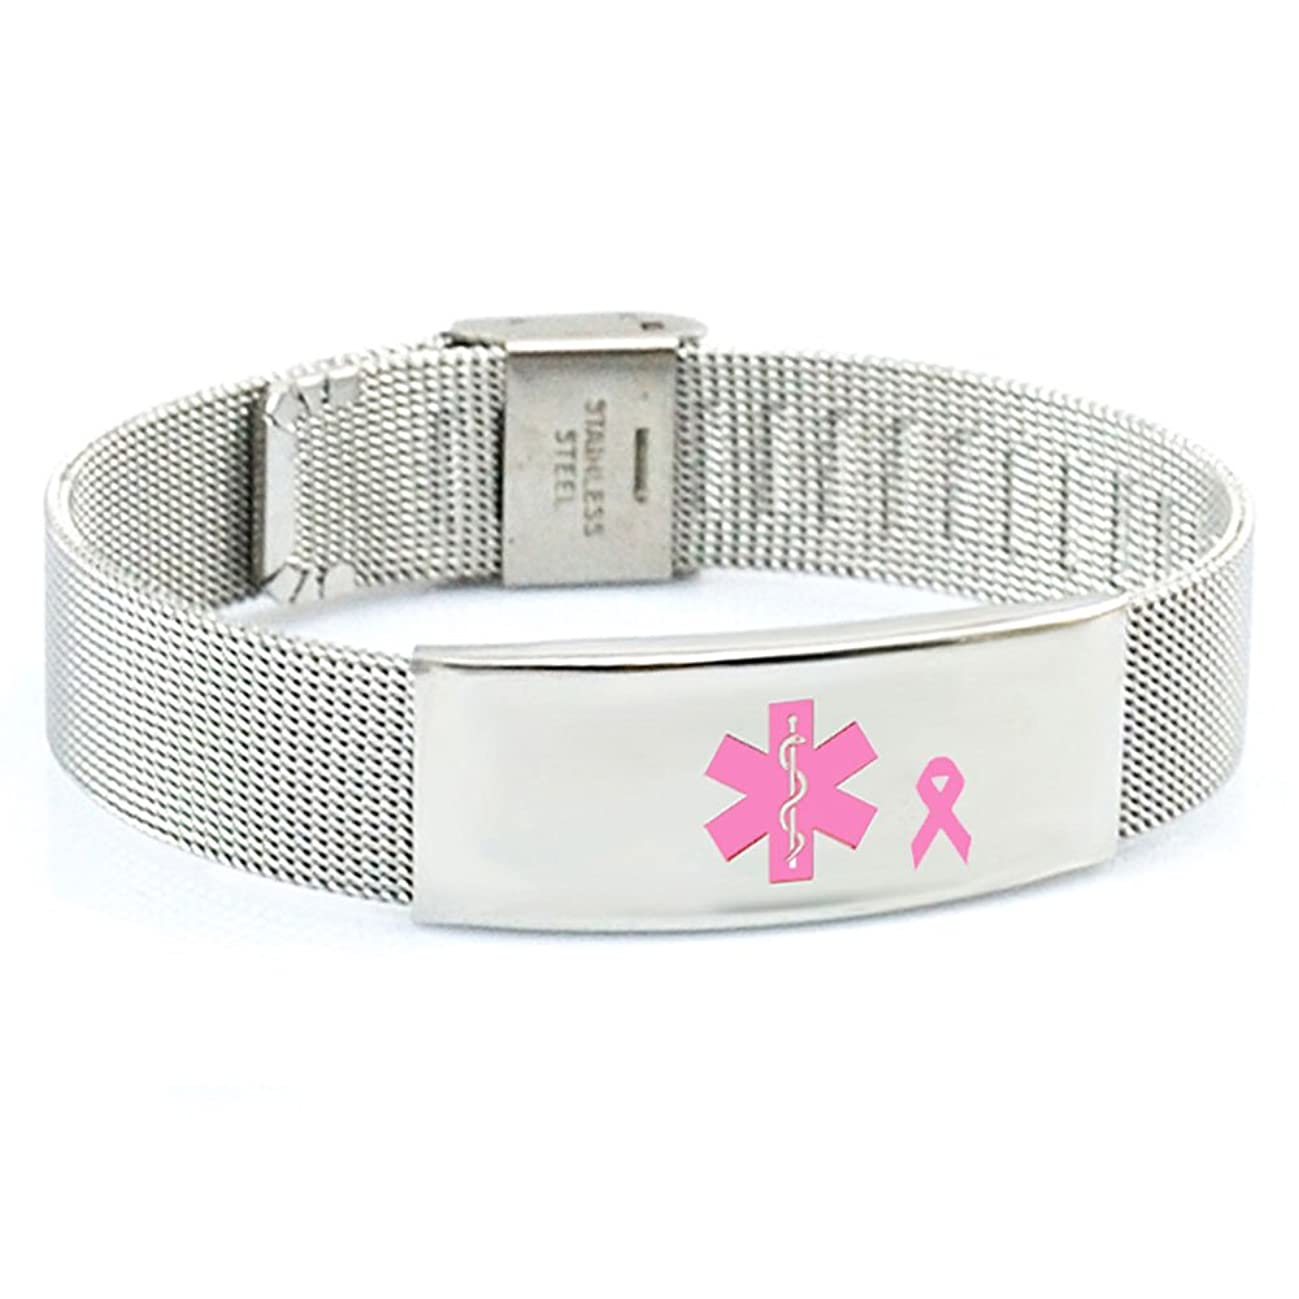 Products for Better Living Breast Cancer No Needle or BP on Left Arm Medical ID Alert Bracelet Adjustable Stainless Steel Mesh